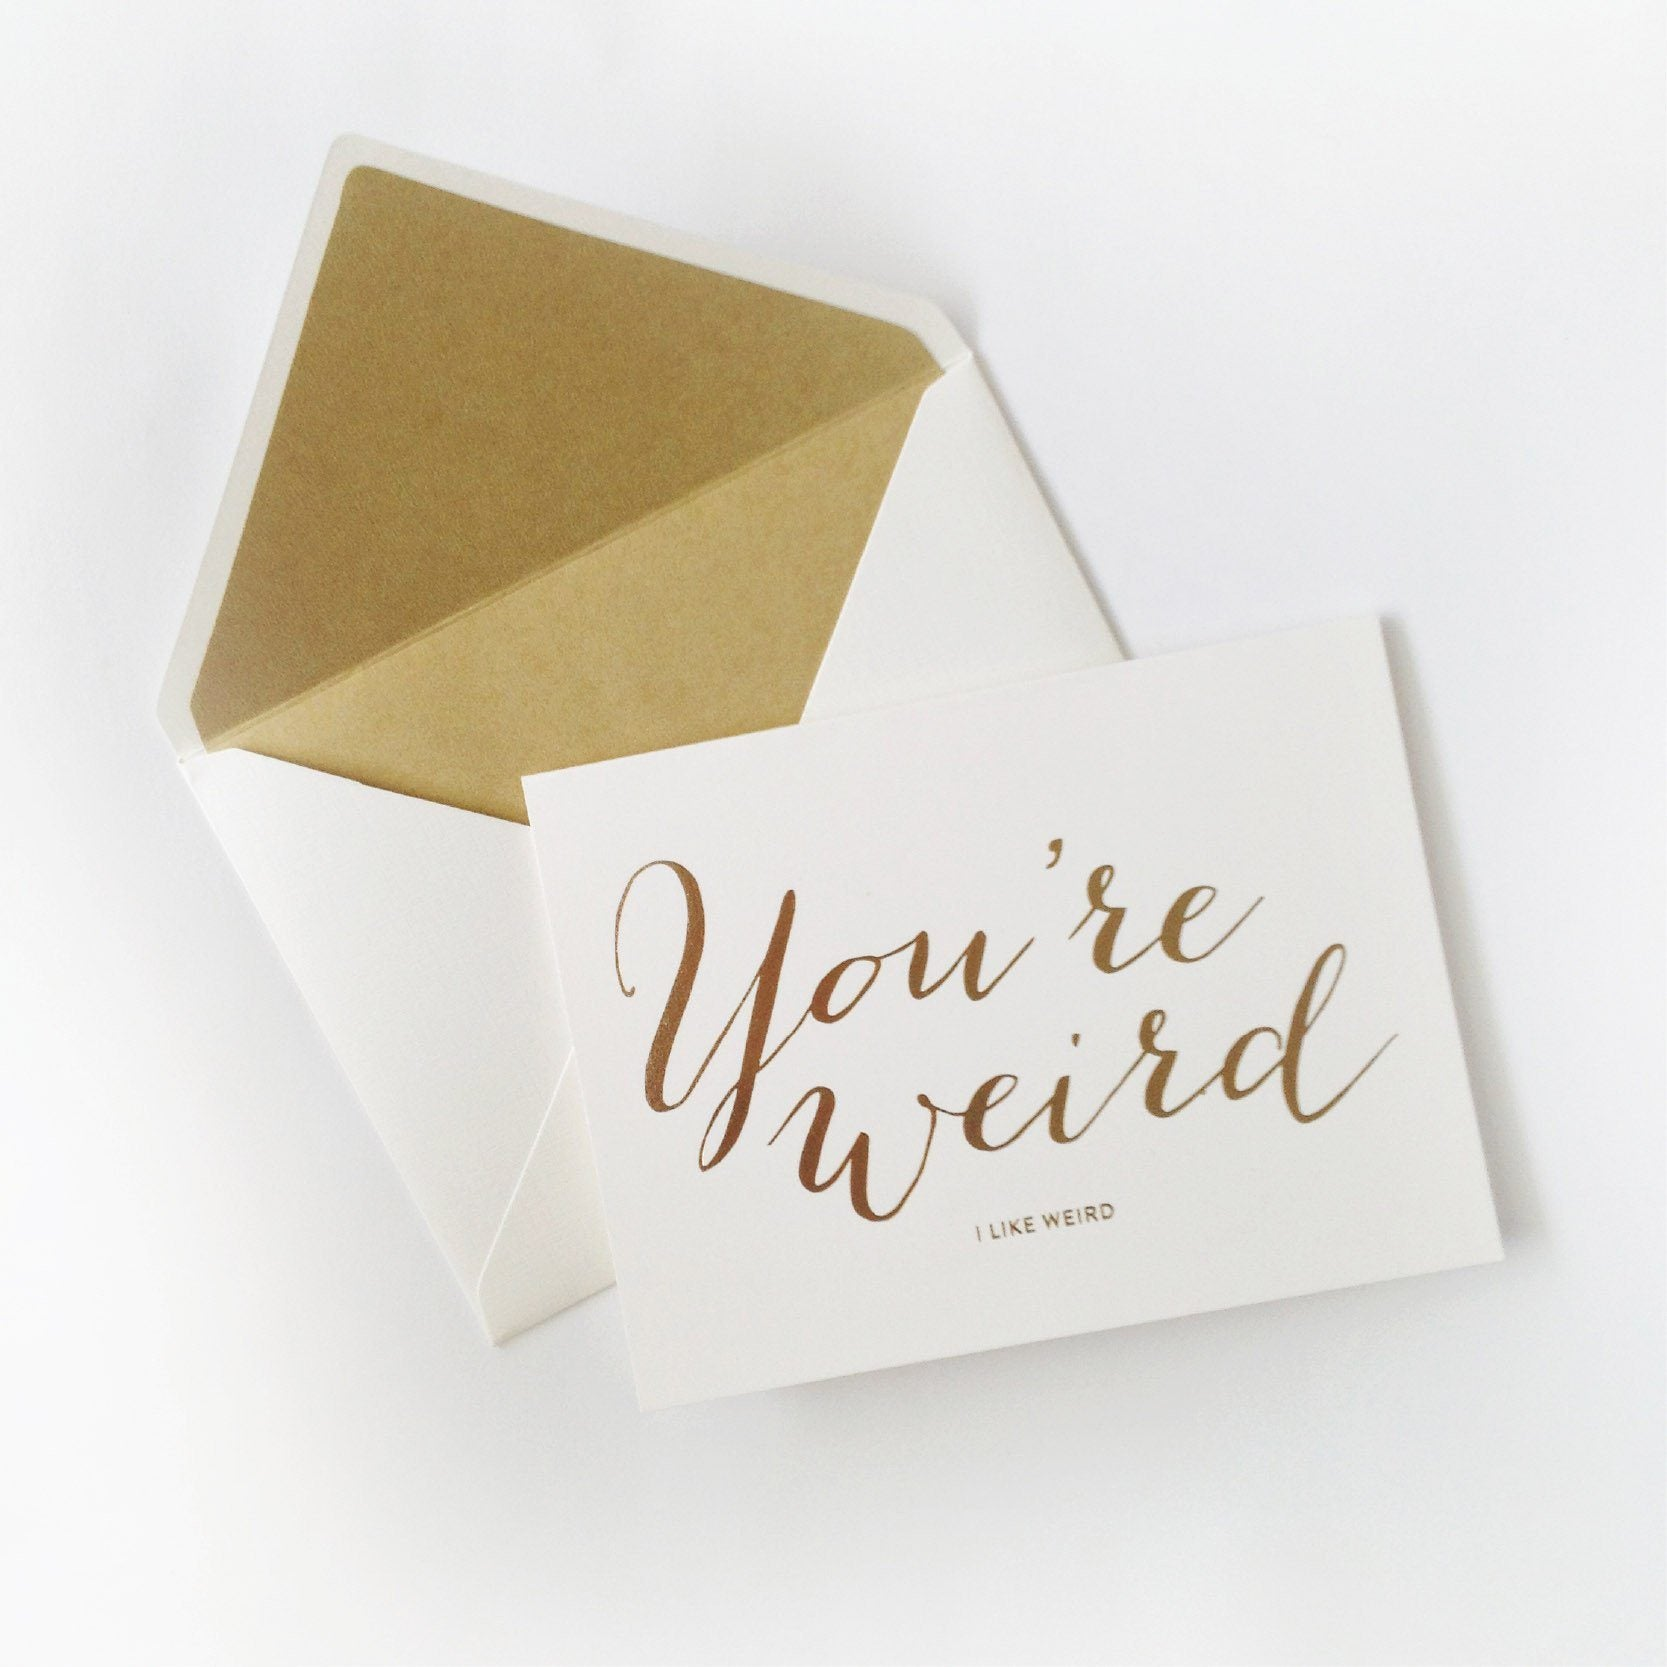 You Are Weird Sweet Talk Card - Love Cards - The Little Talks - Naiise